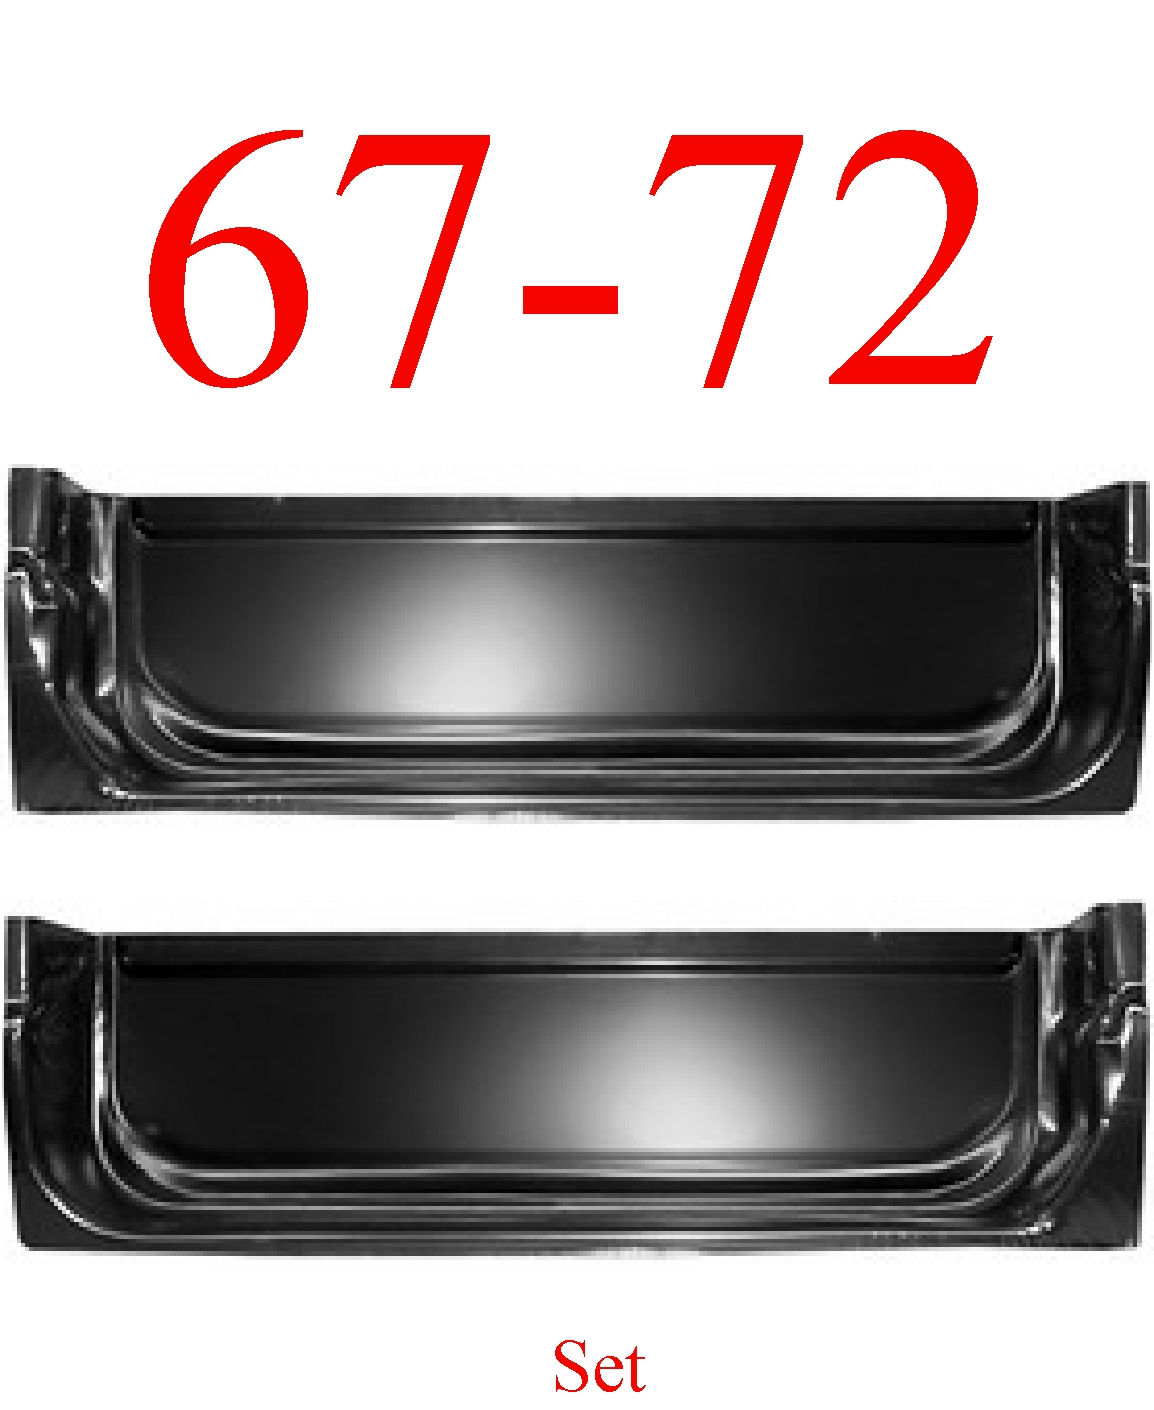 67-72 Chevy Inner Door Bottom Set